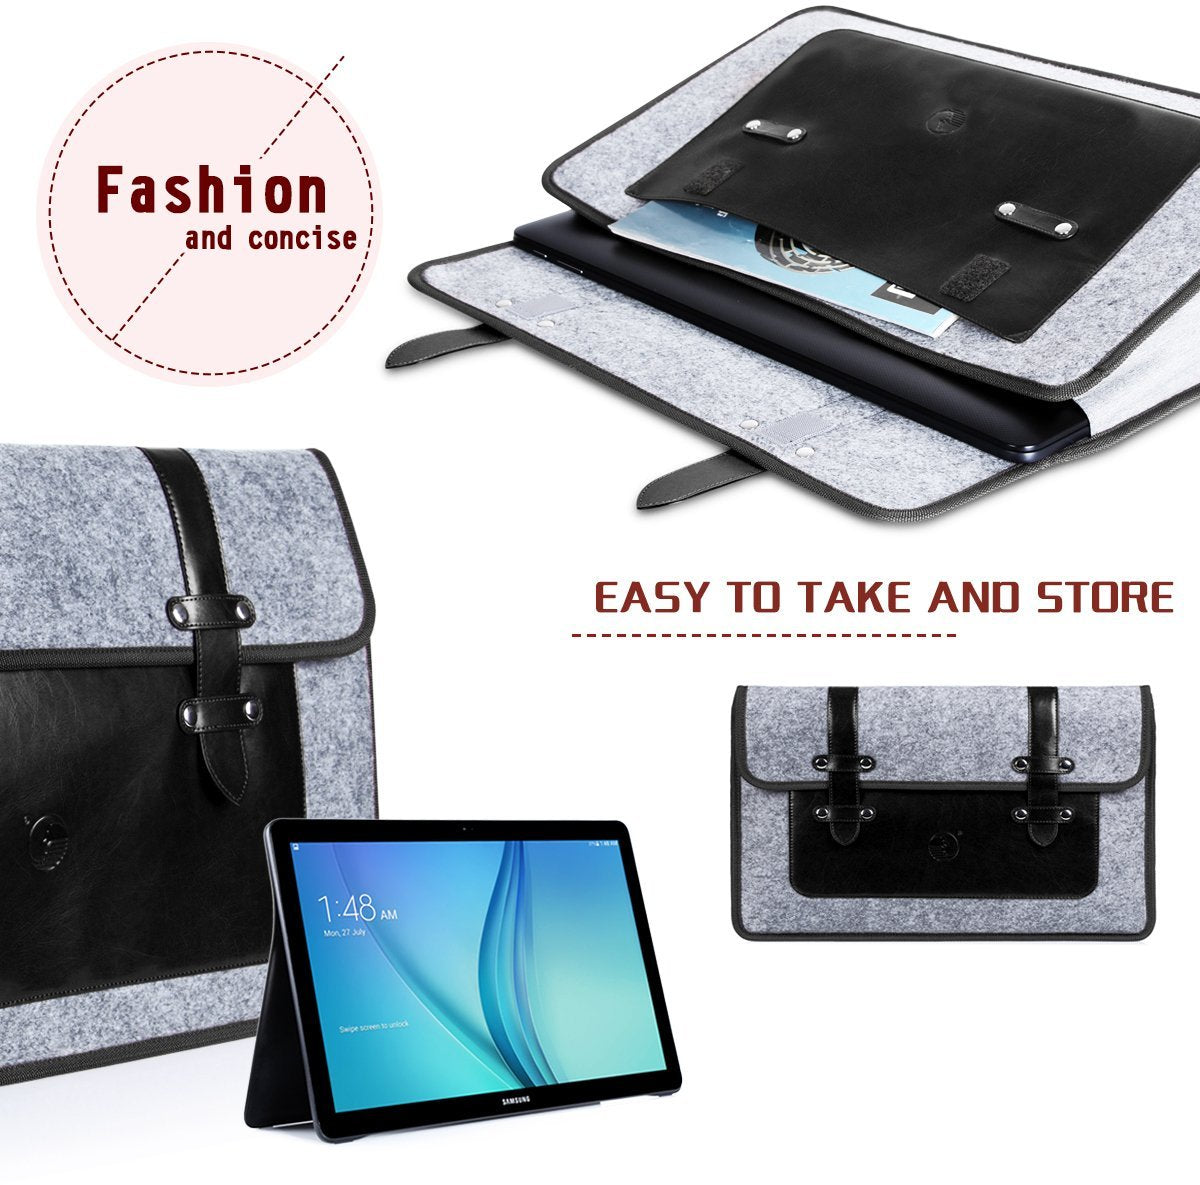 PU Leather and Durable Felt Case for Galaxy View 18.4